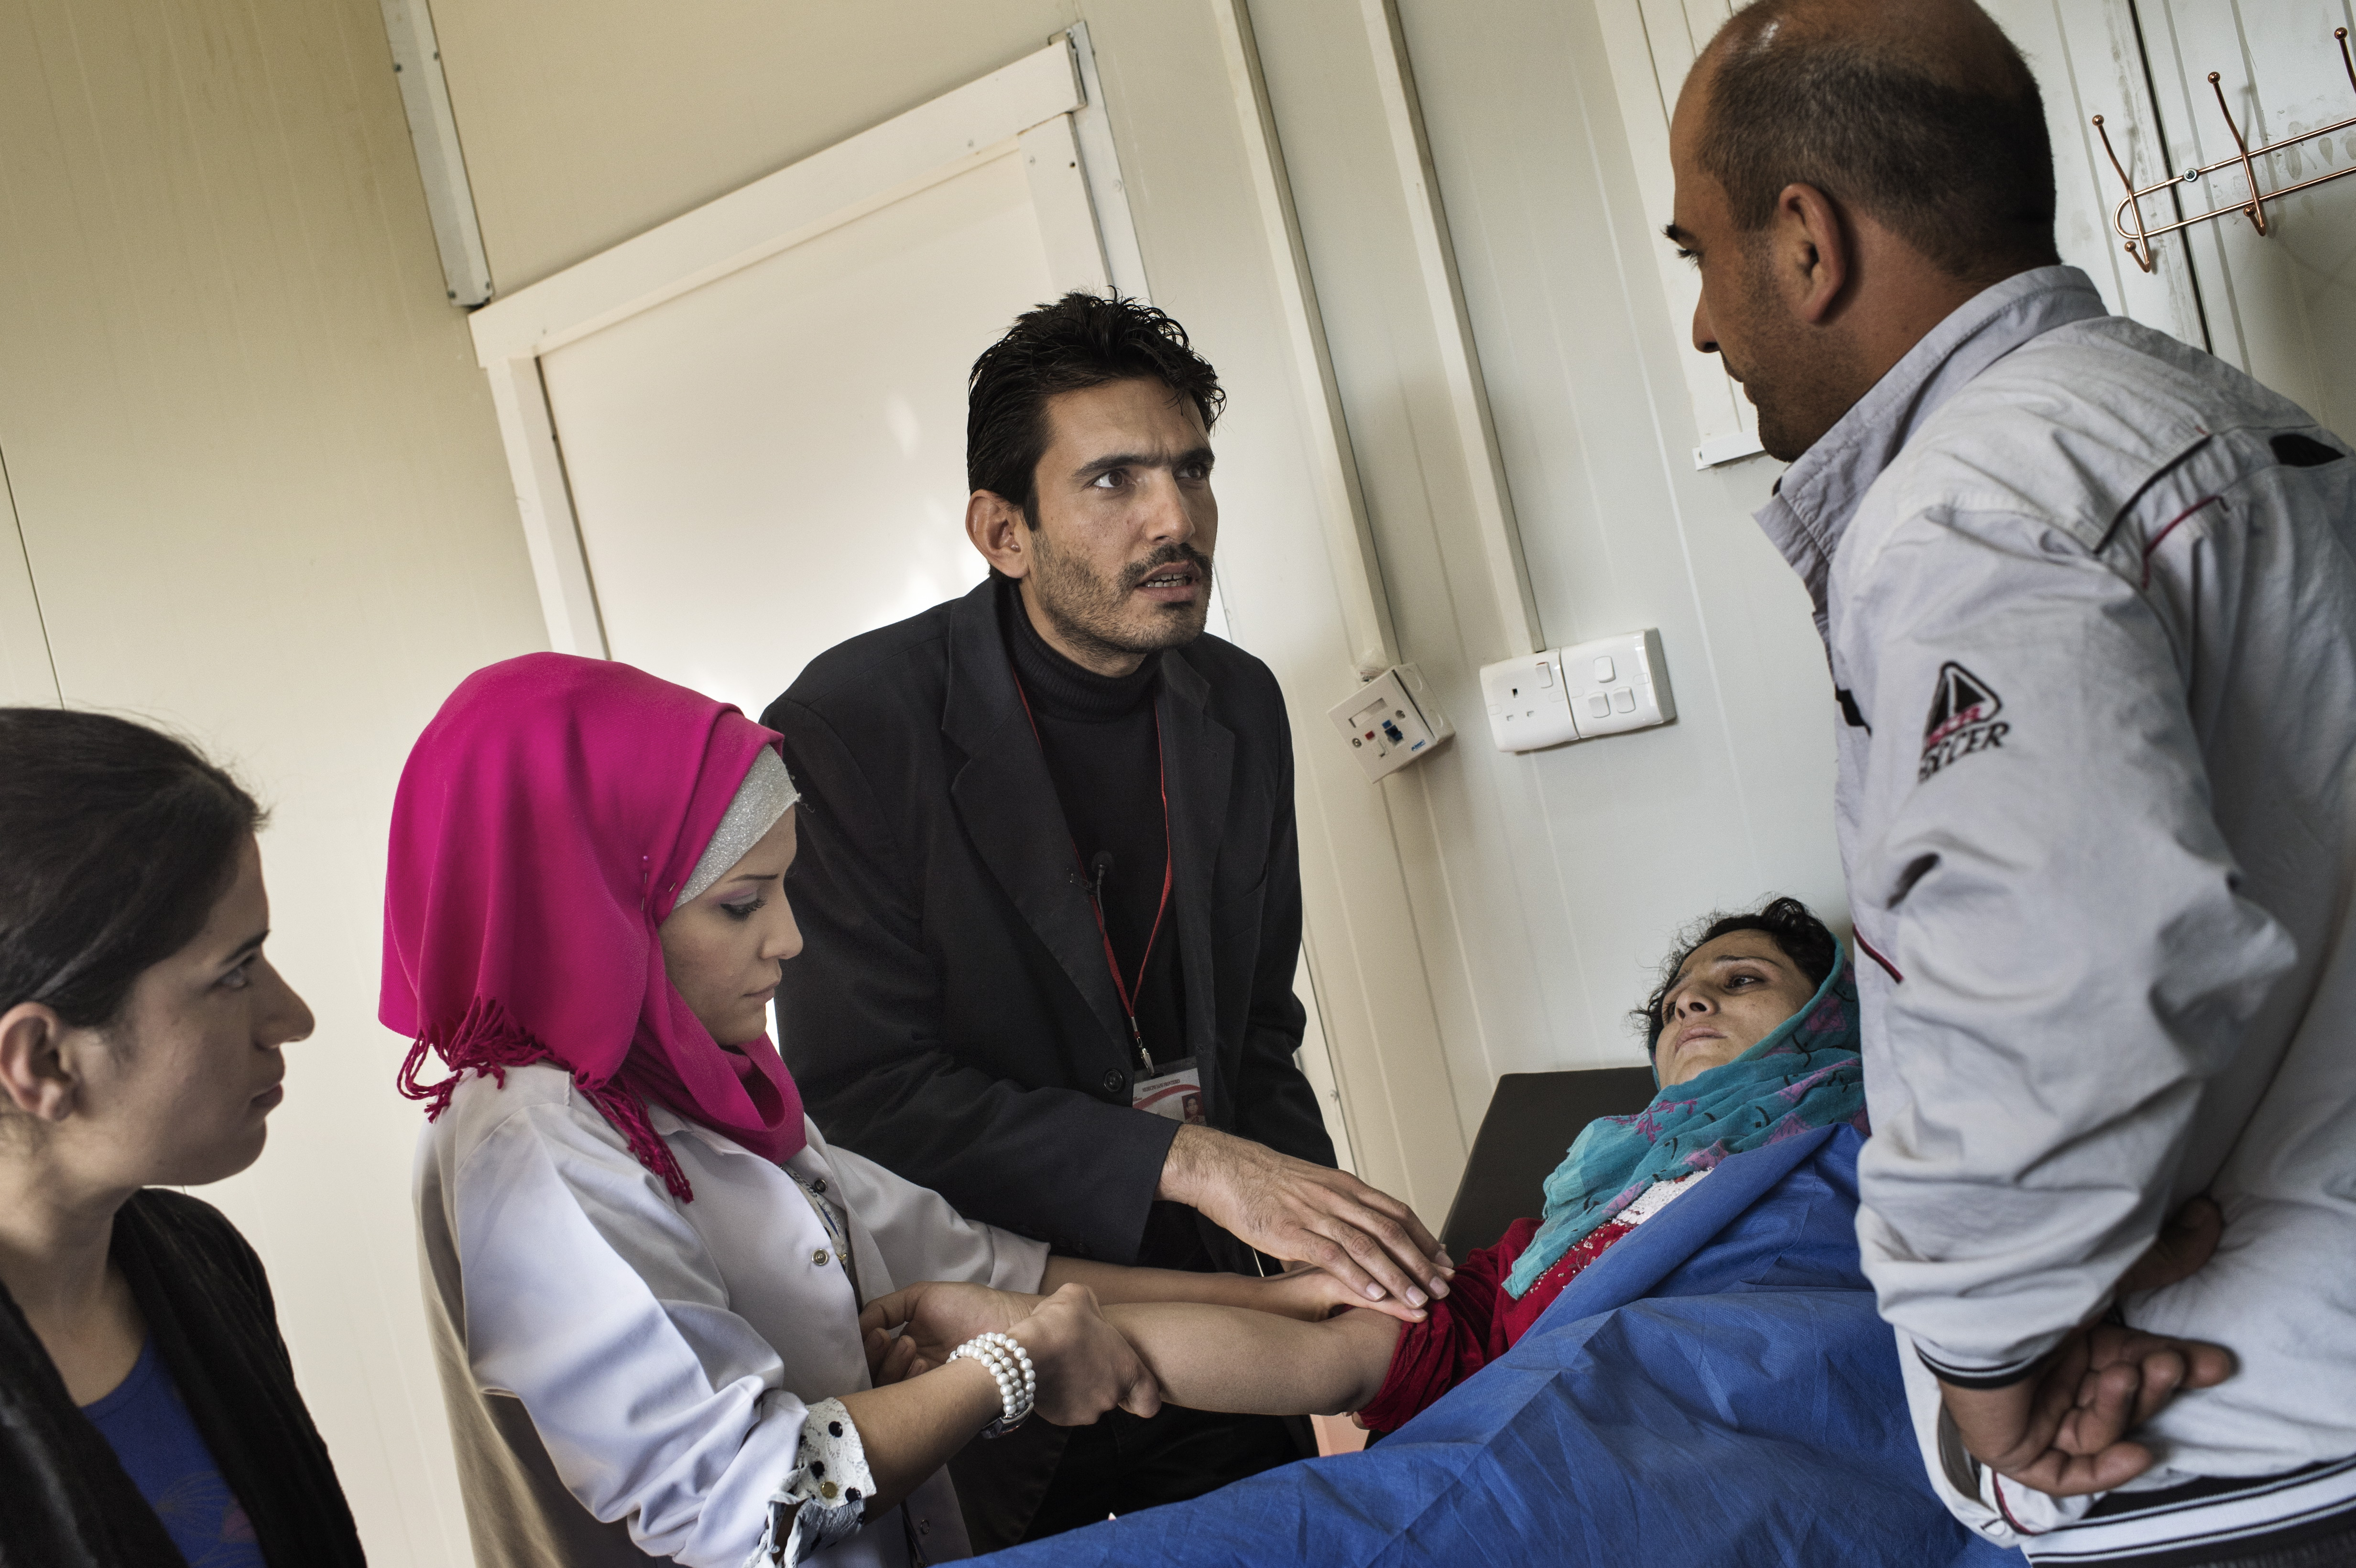 Dr. Mustapha Khalil, medical coordinator at the Doctors Without Borders health clinic in the Domiz refugee camp in northeast Iraq, tends to an ill patient, November 6, 2013.